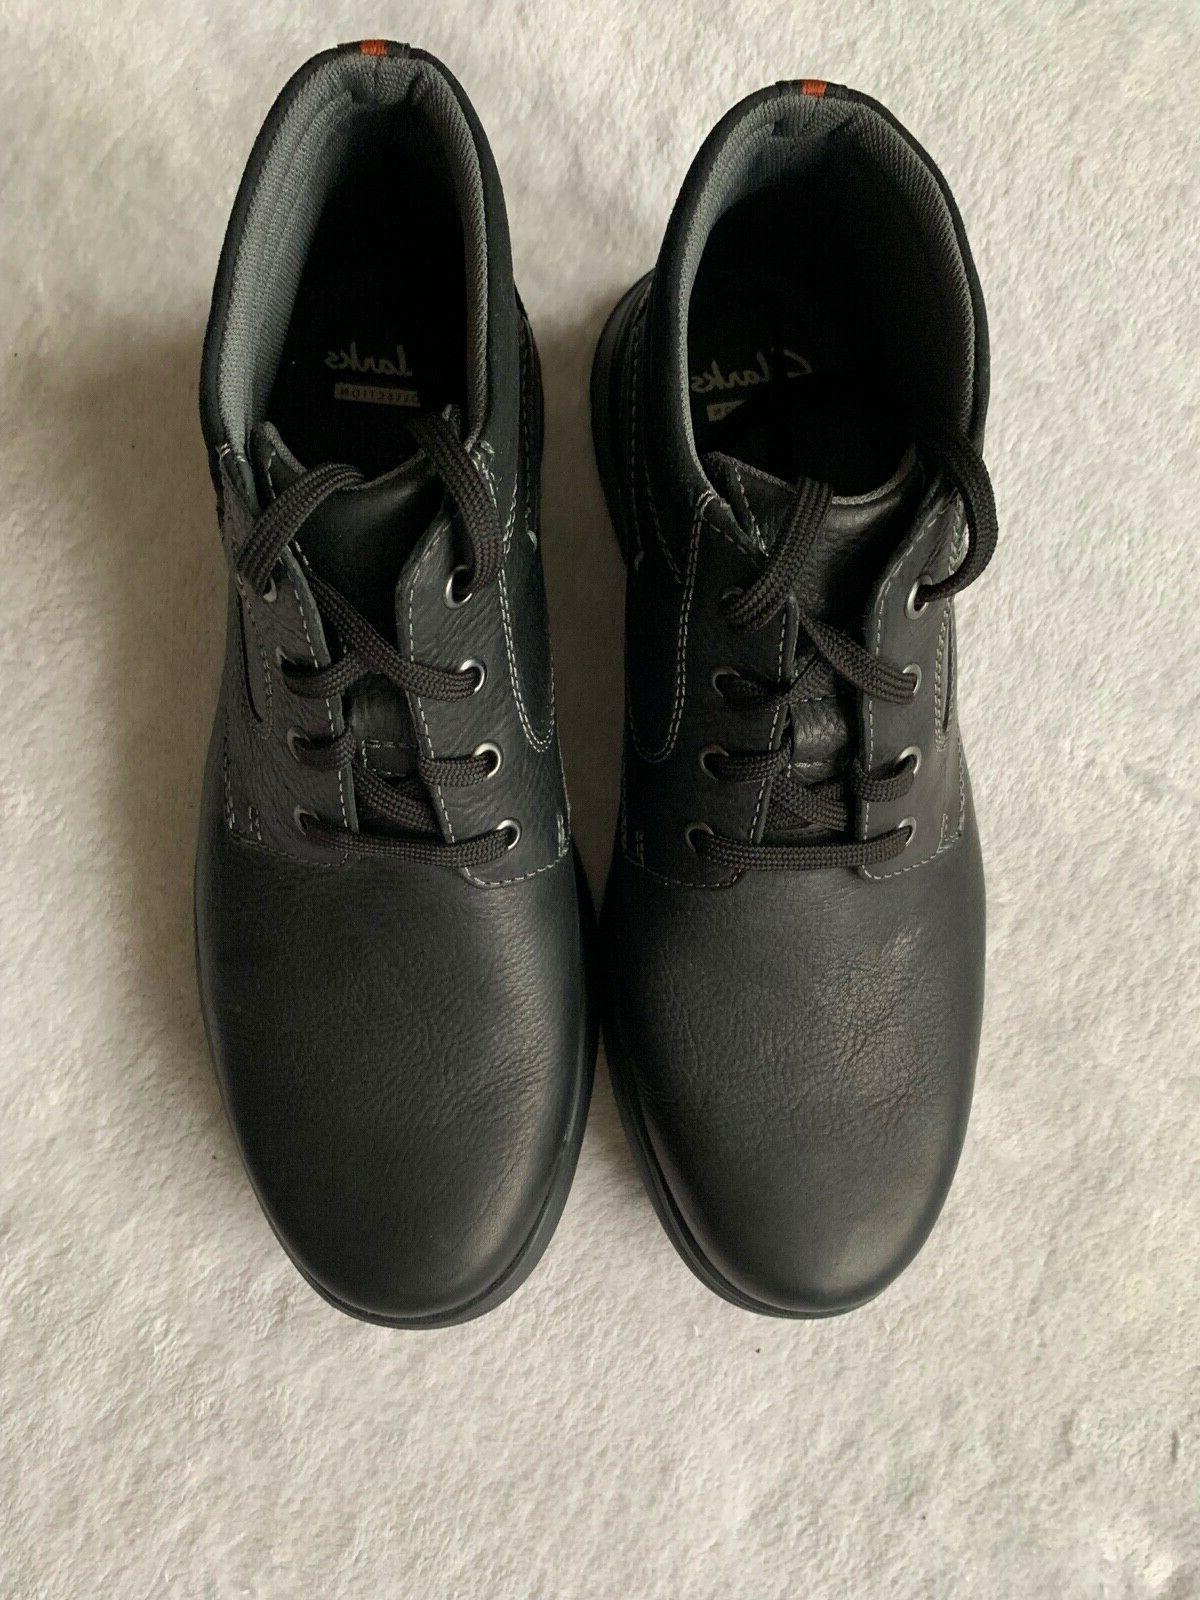 NWT BOOTS: 10.5 W